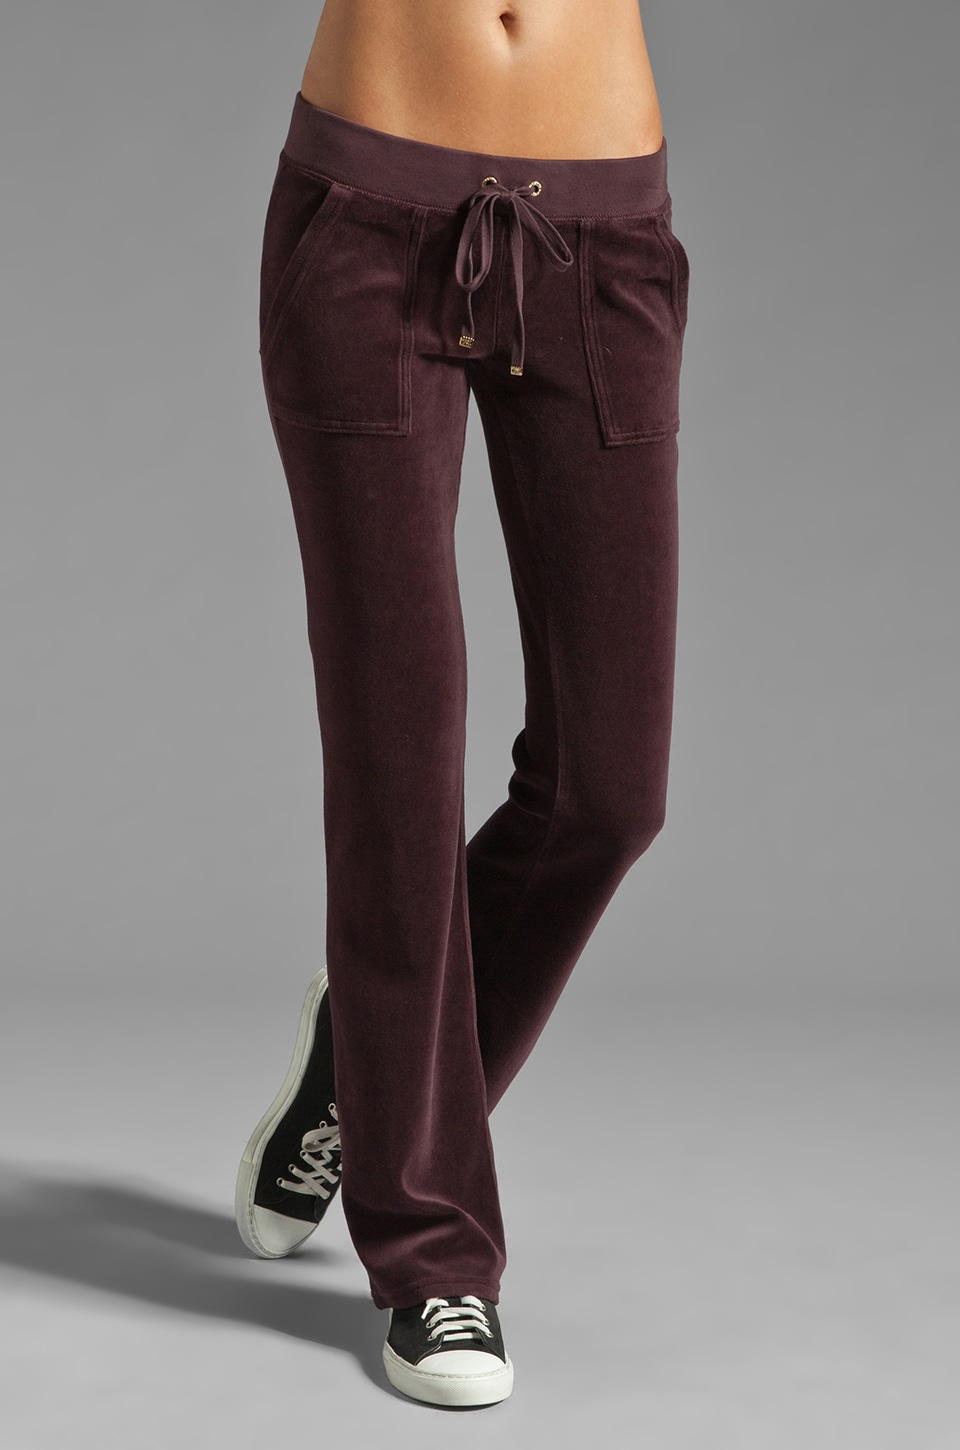 Juicy Couture Velour Bootcut Snap Pocket Pant in Dark Cabernet